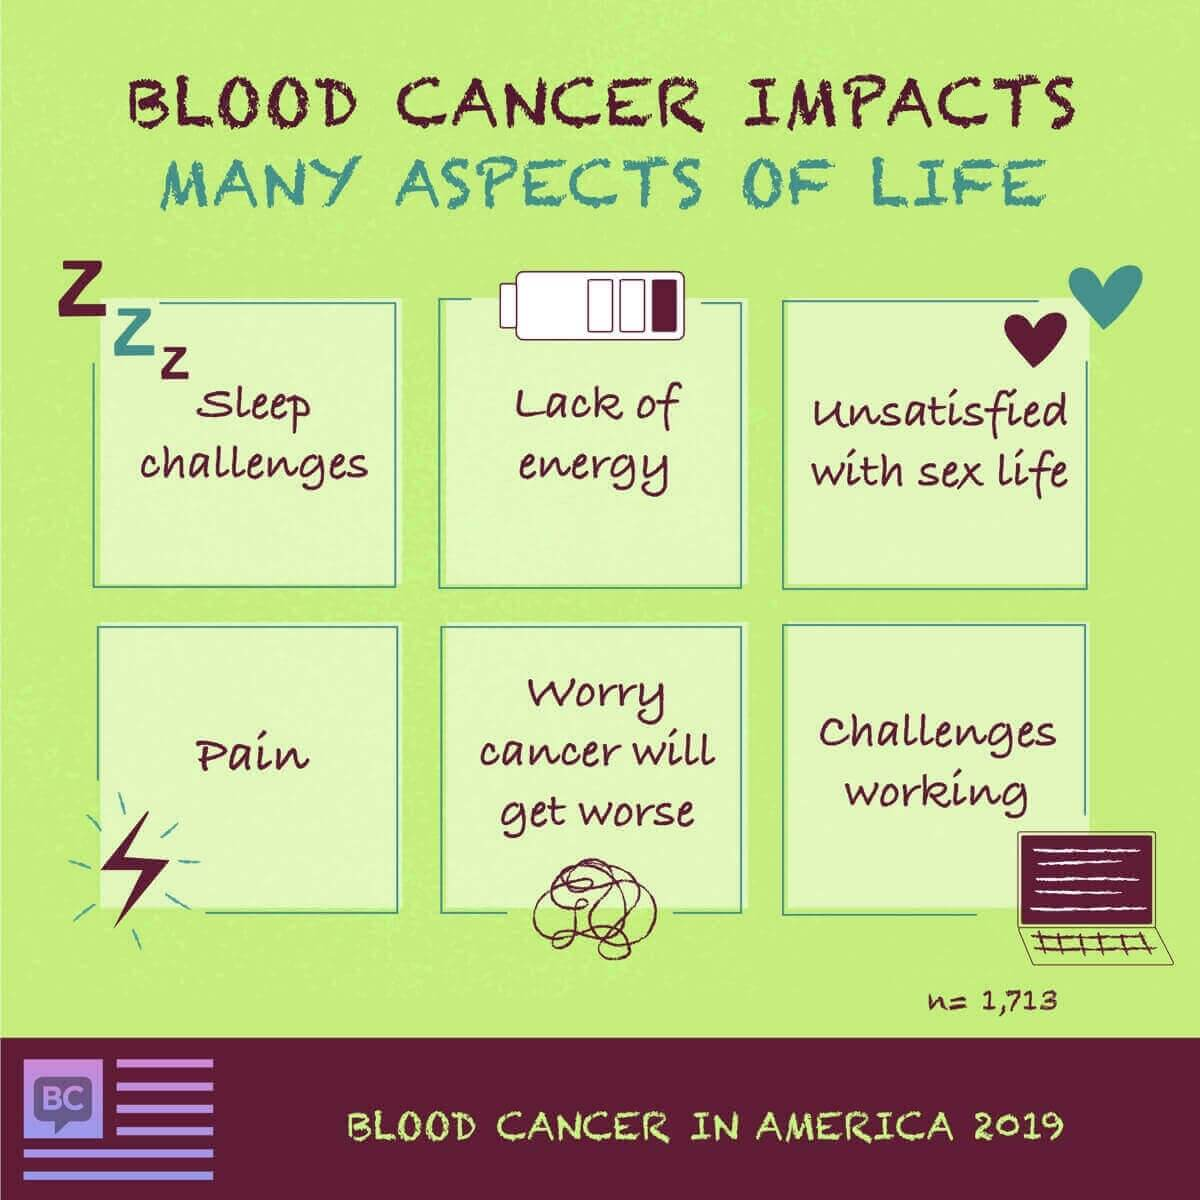 Blood cancer impacts many aspects of life including sleep, sex life, pain, energy levels, and work